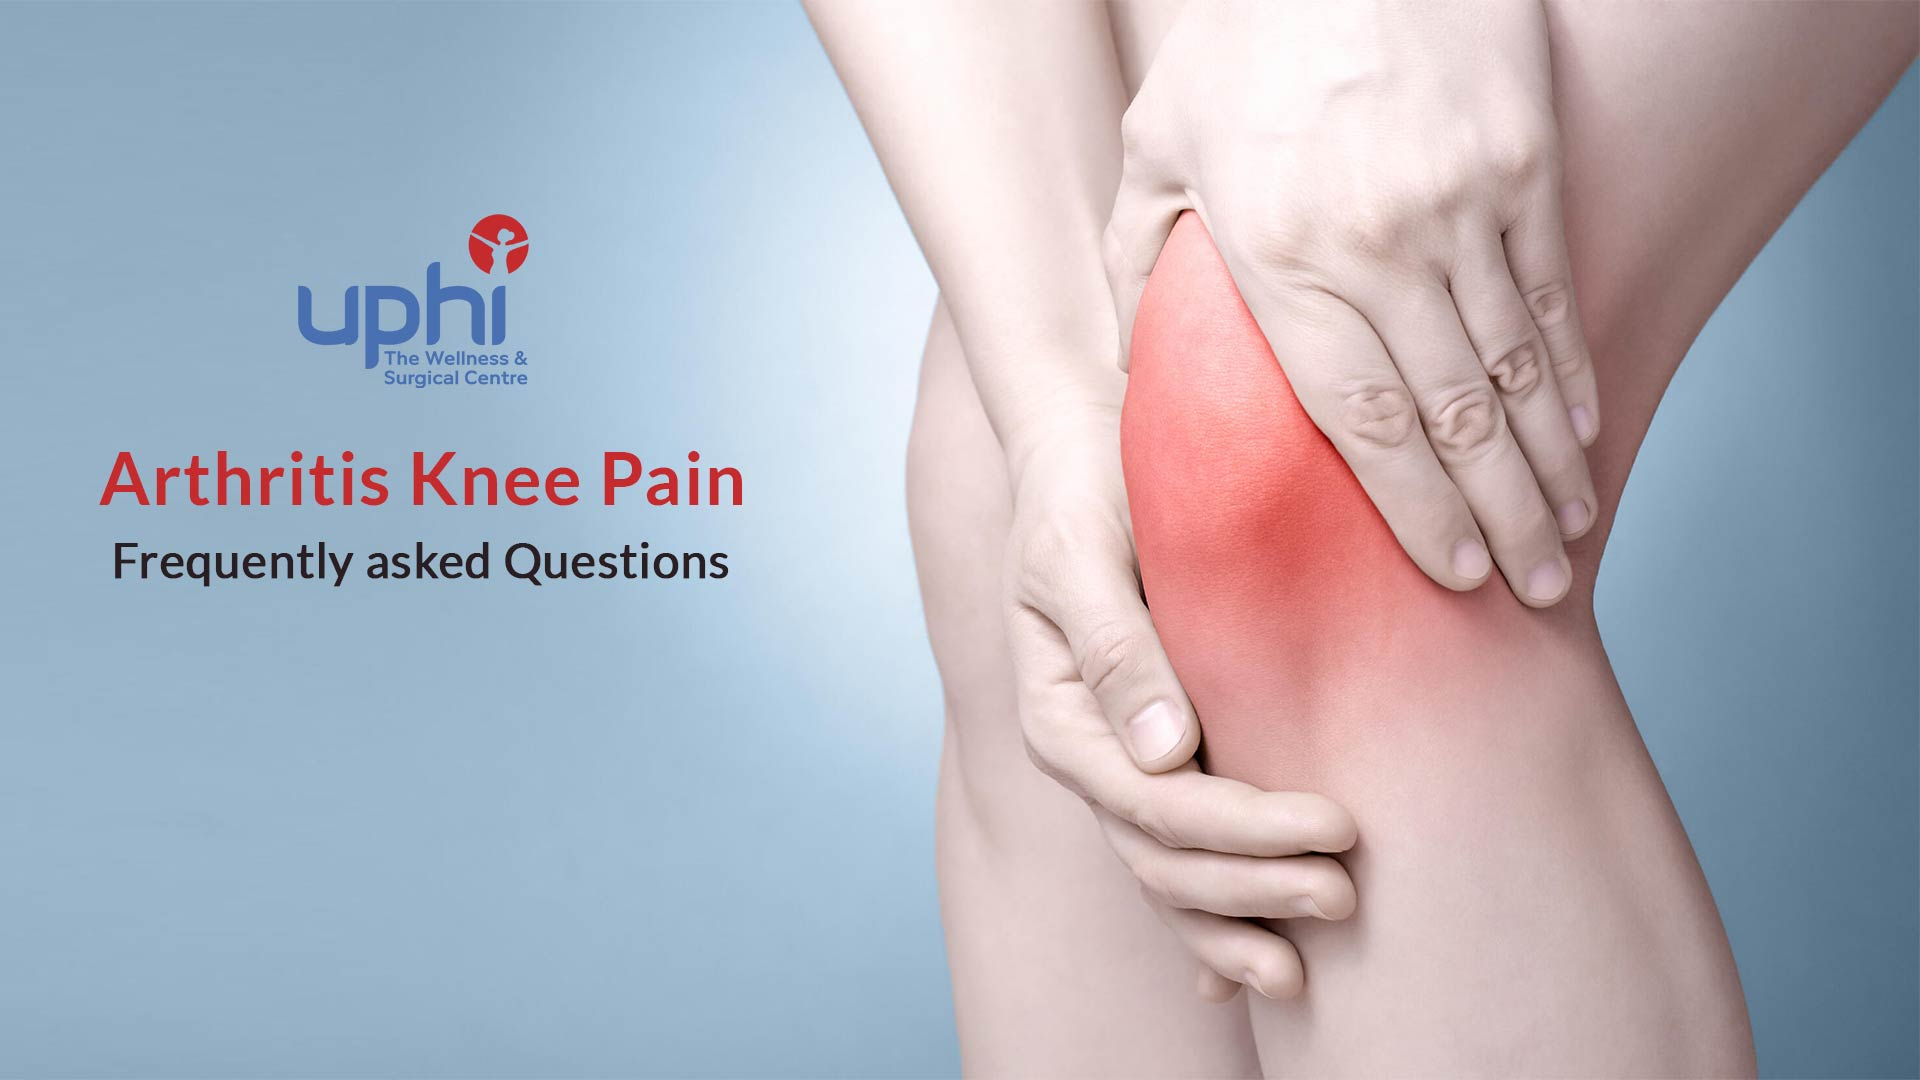 Arthritis Knee Pain Specialist in India